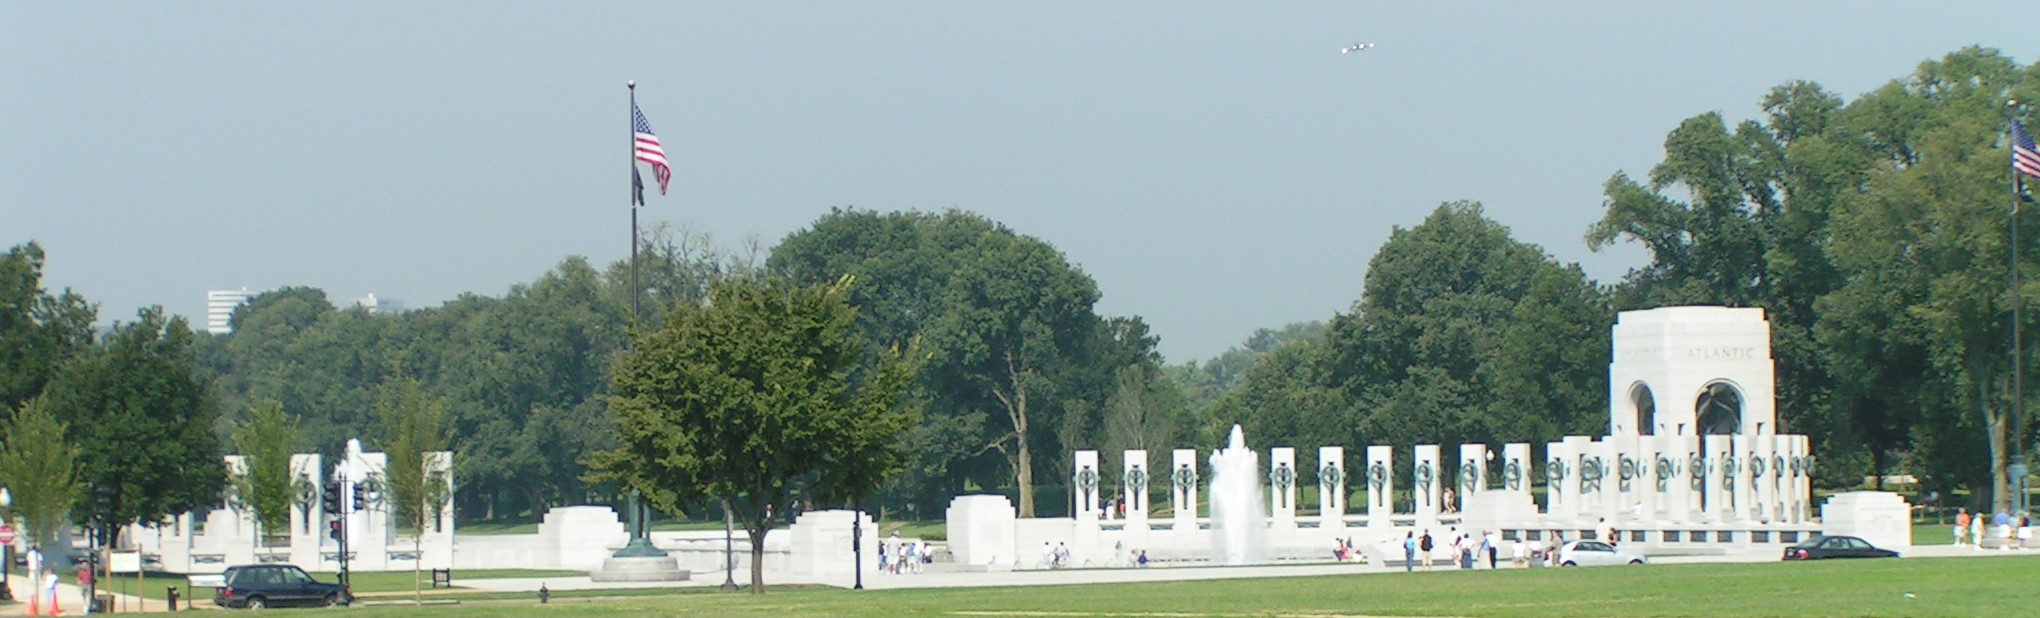 The WWII Memorial in Washington, DC 2014 © APC